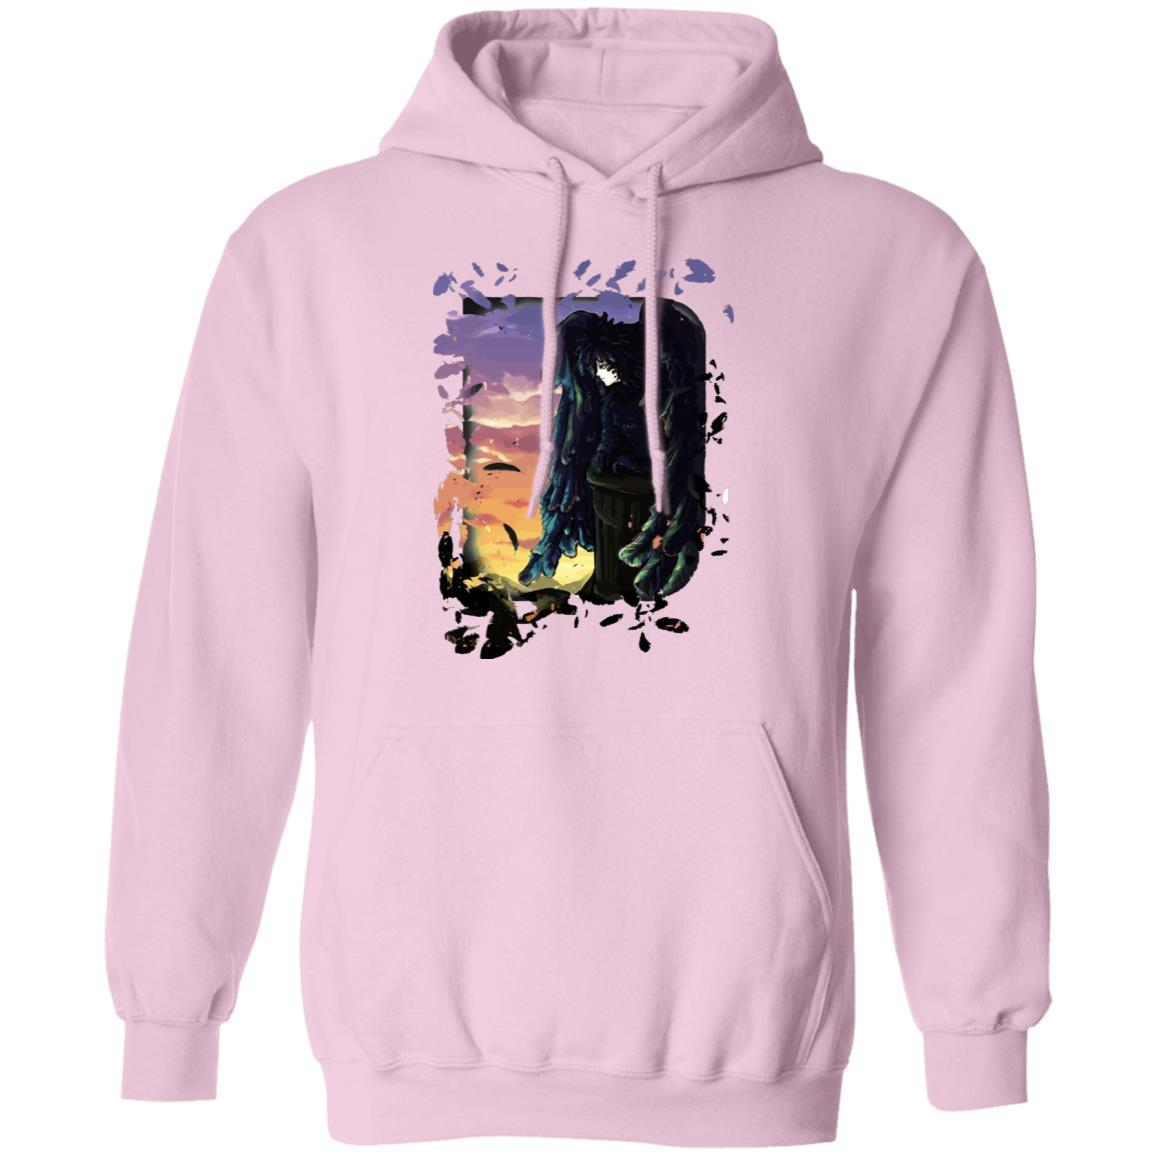 Howl's Moving Castle – Howl's Beast Form Hoodie